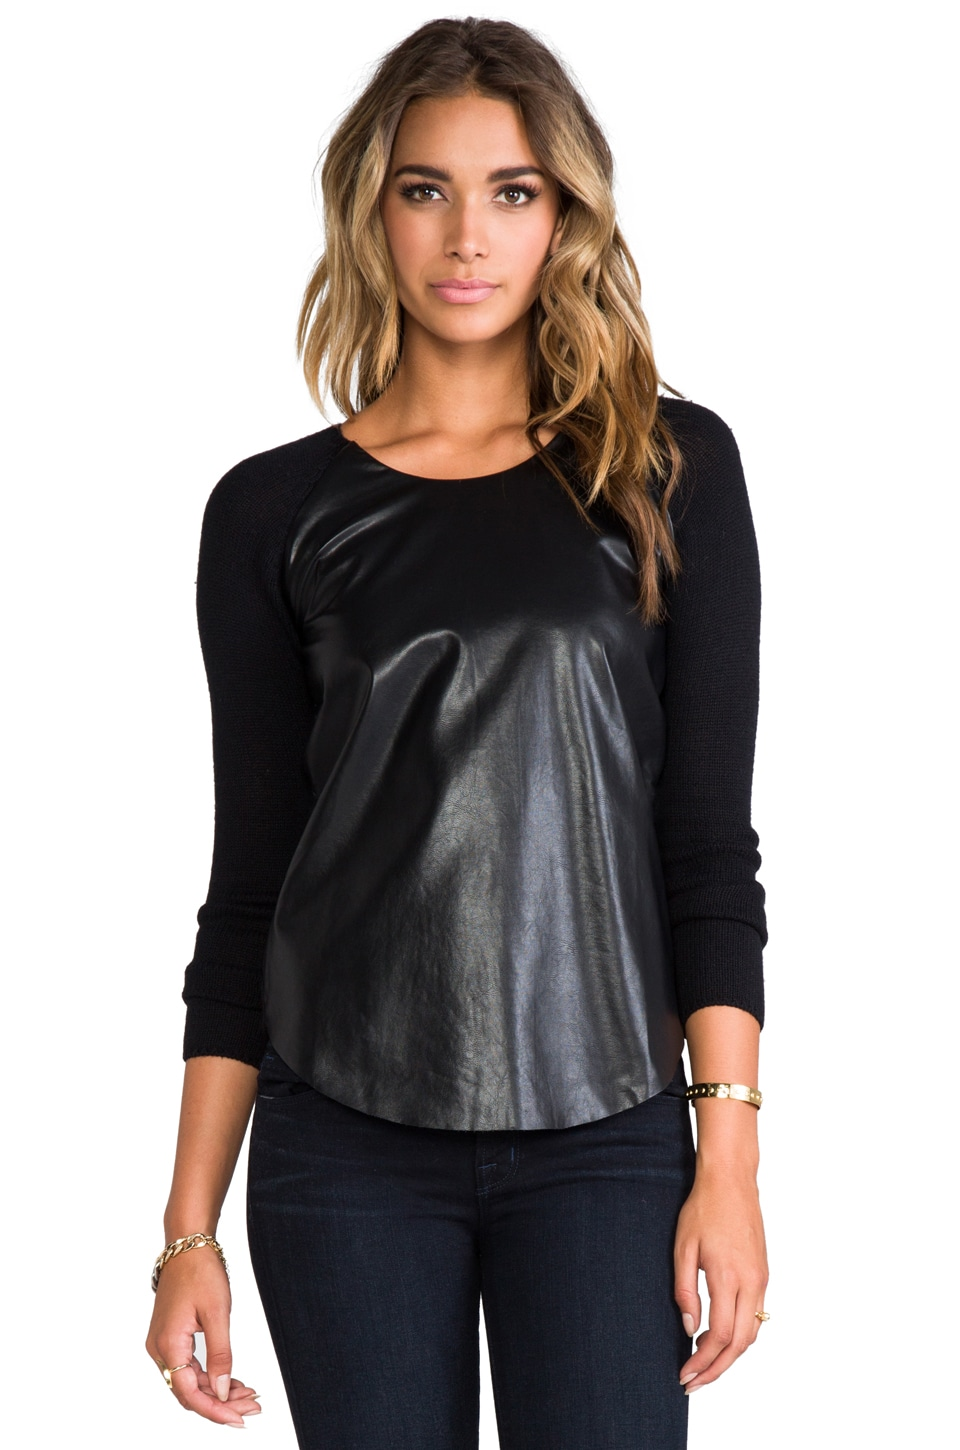 Central Park West Knickerbocker Place Sweater in Black